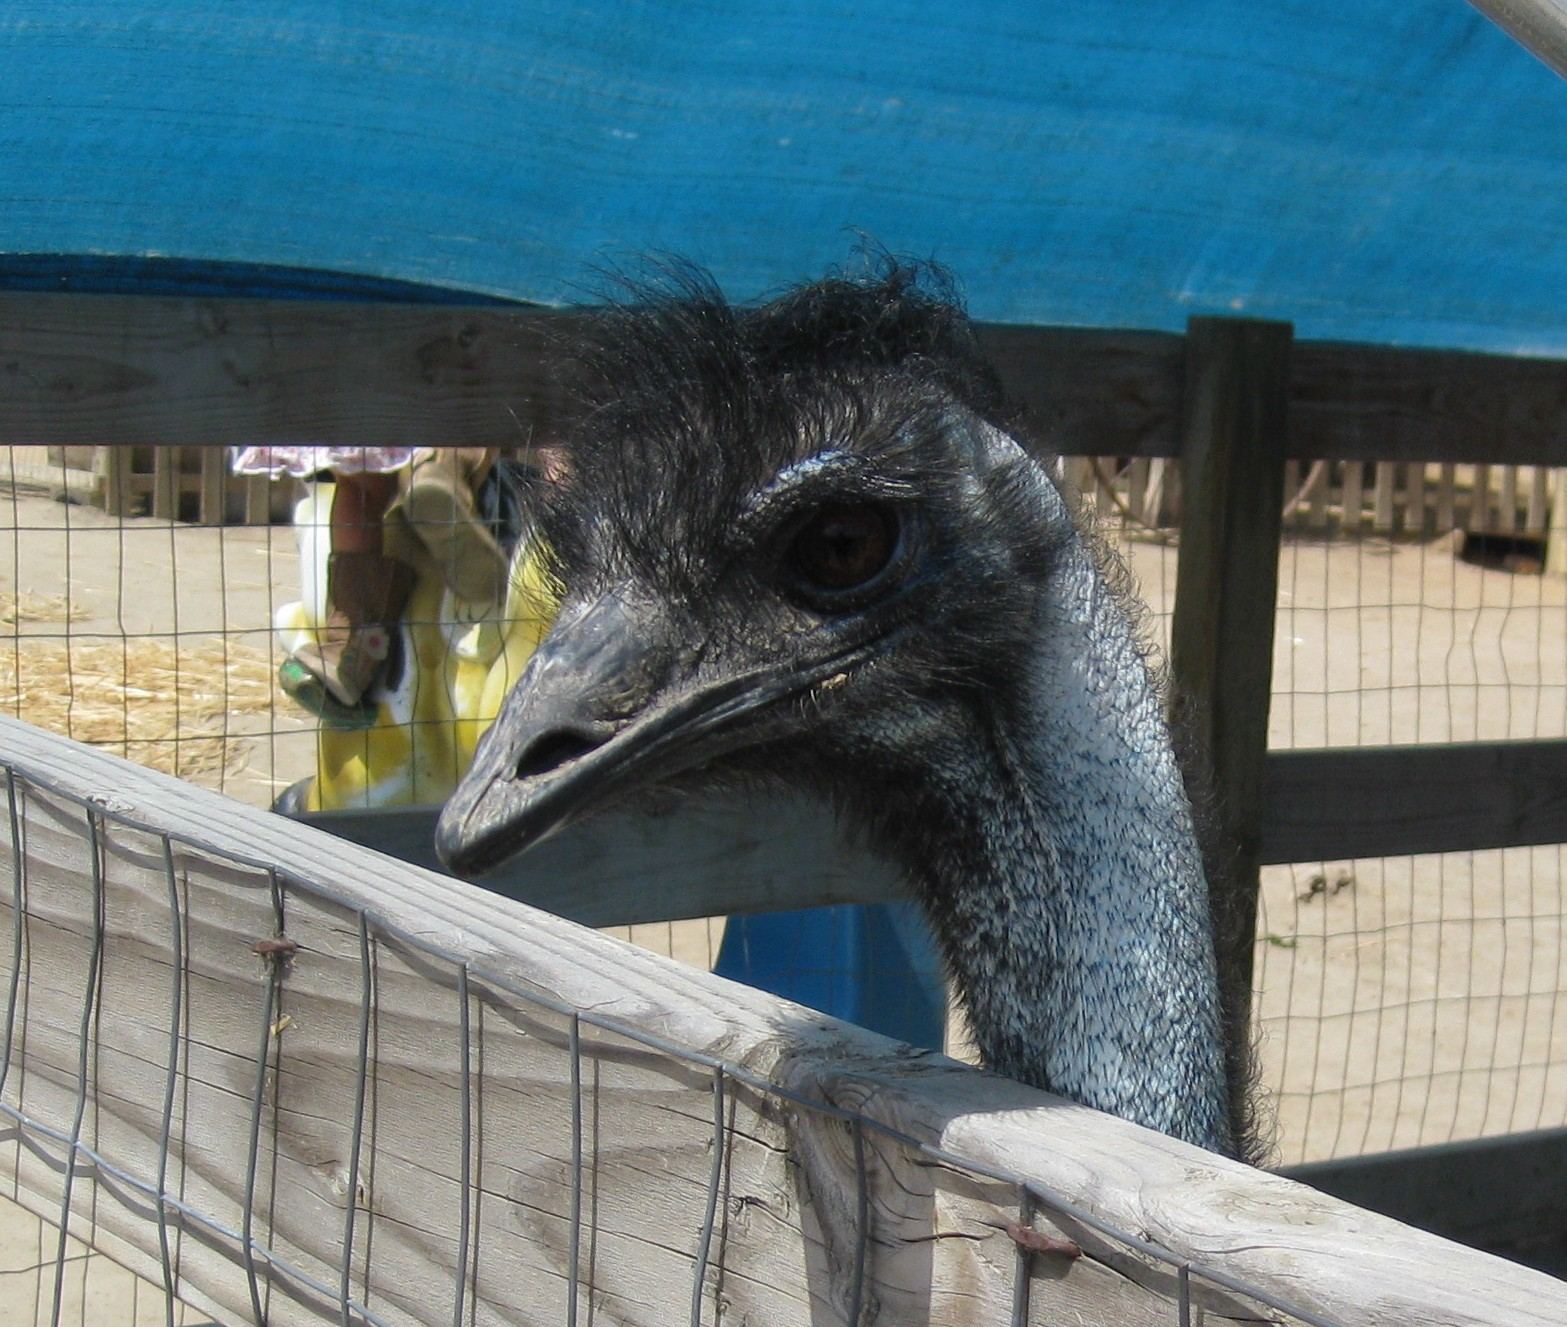 A hungry Ostrich